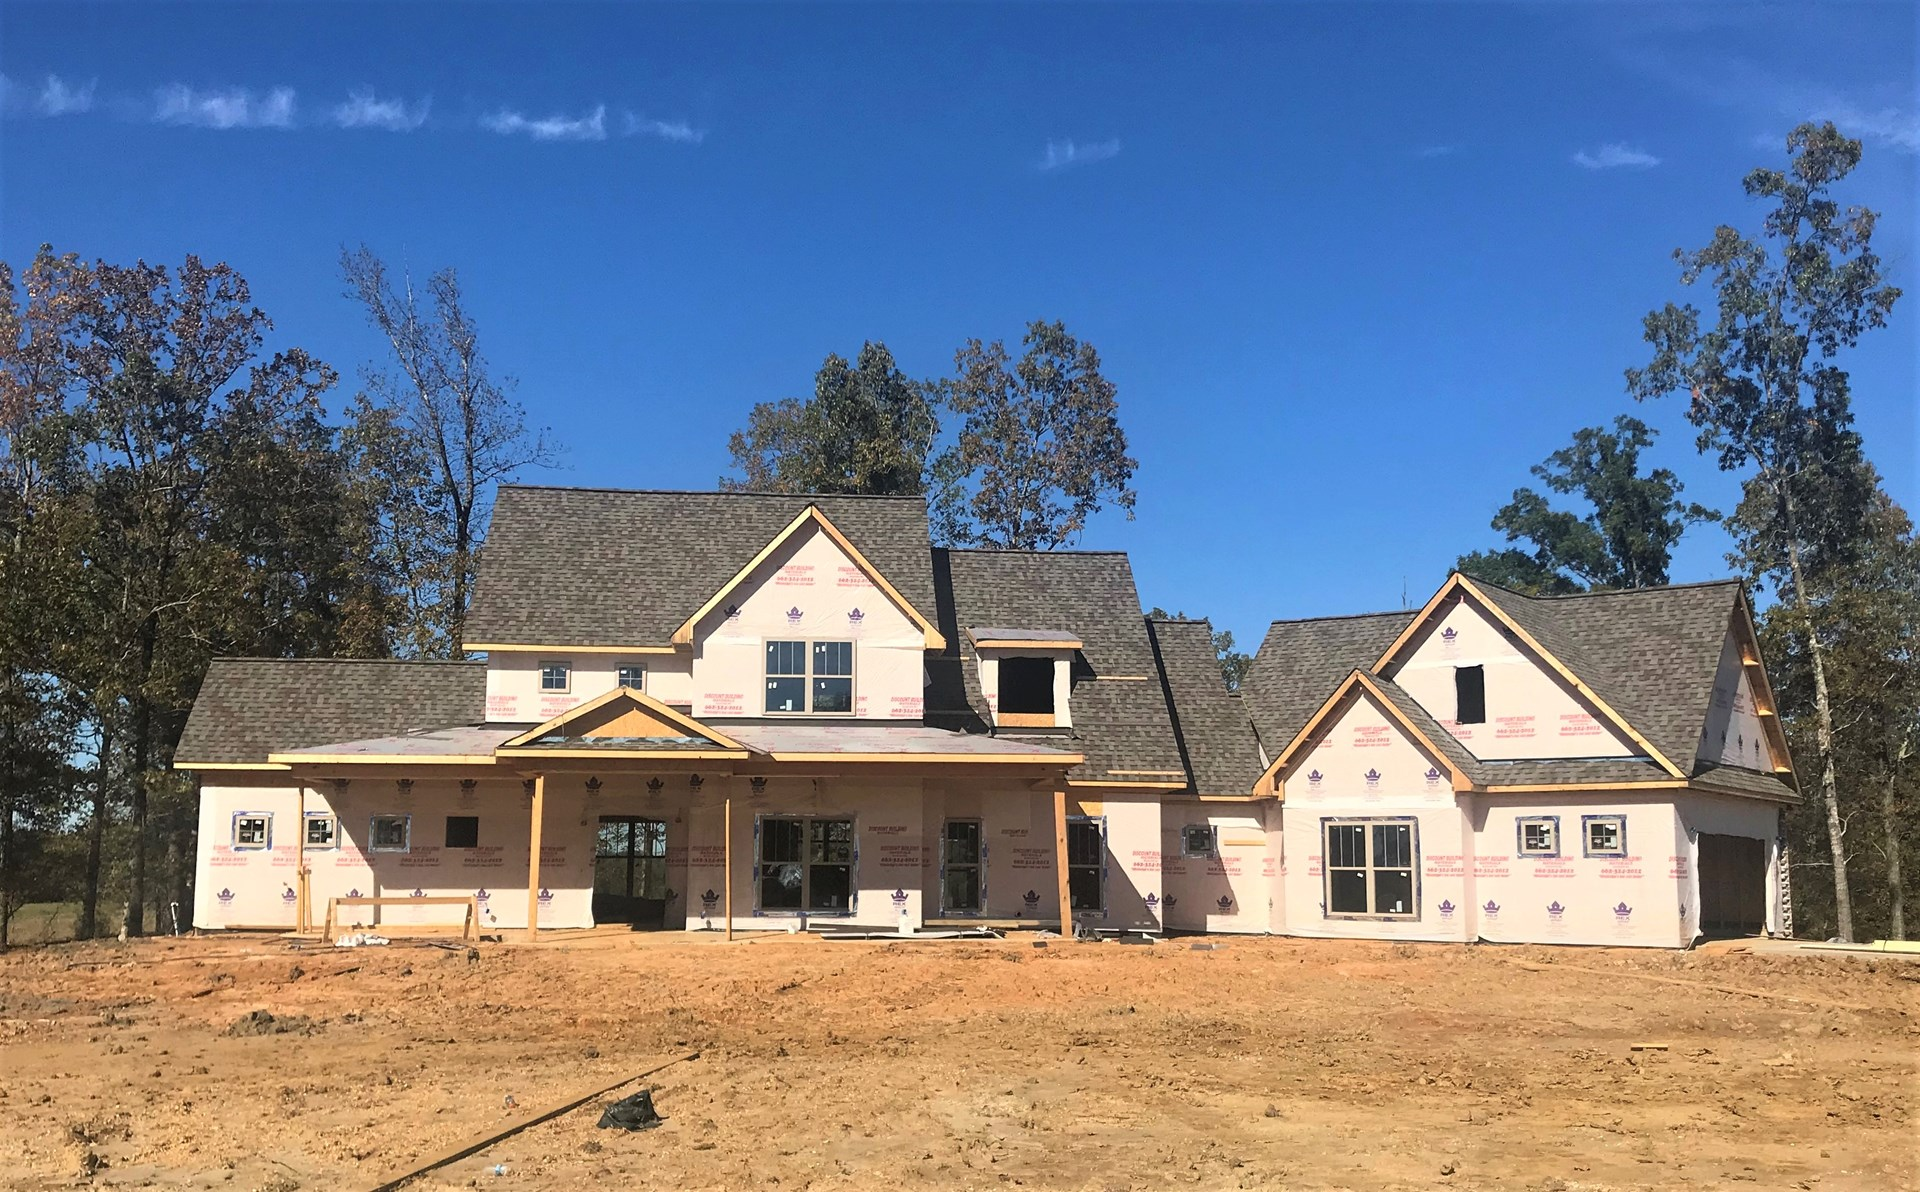 NEW CONSTRUCTION FOR SALE IN IRONWOOD SUBDIVISION